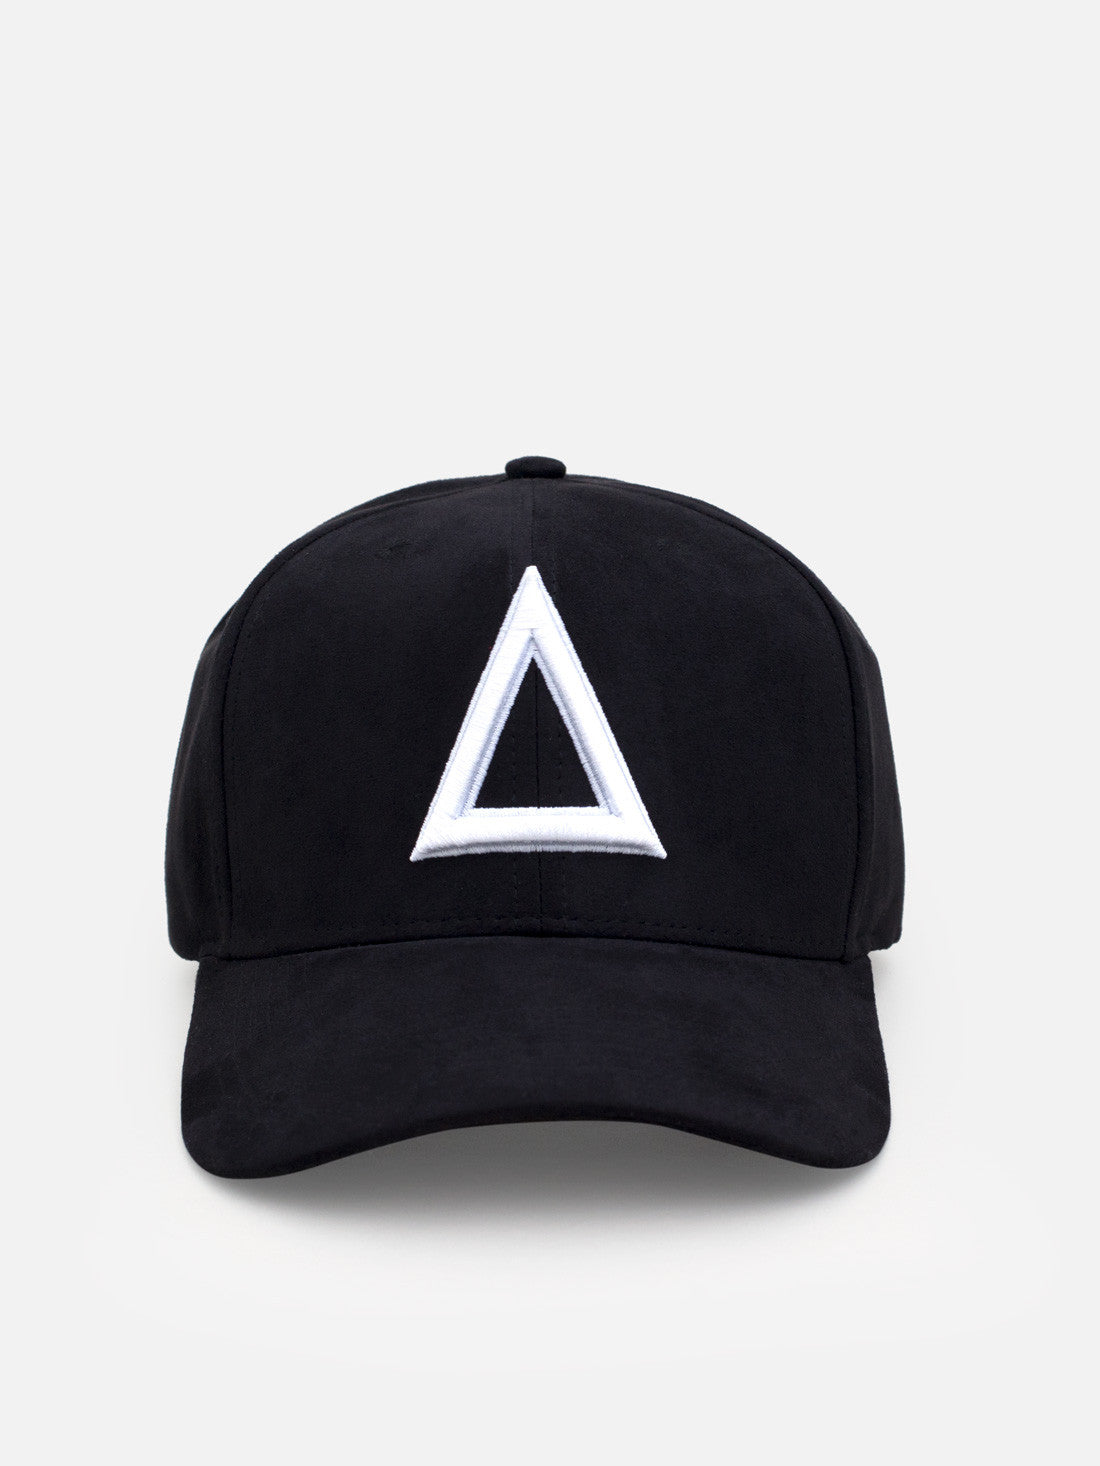 Suede Dad hat Black - white tri